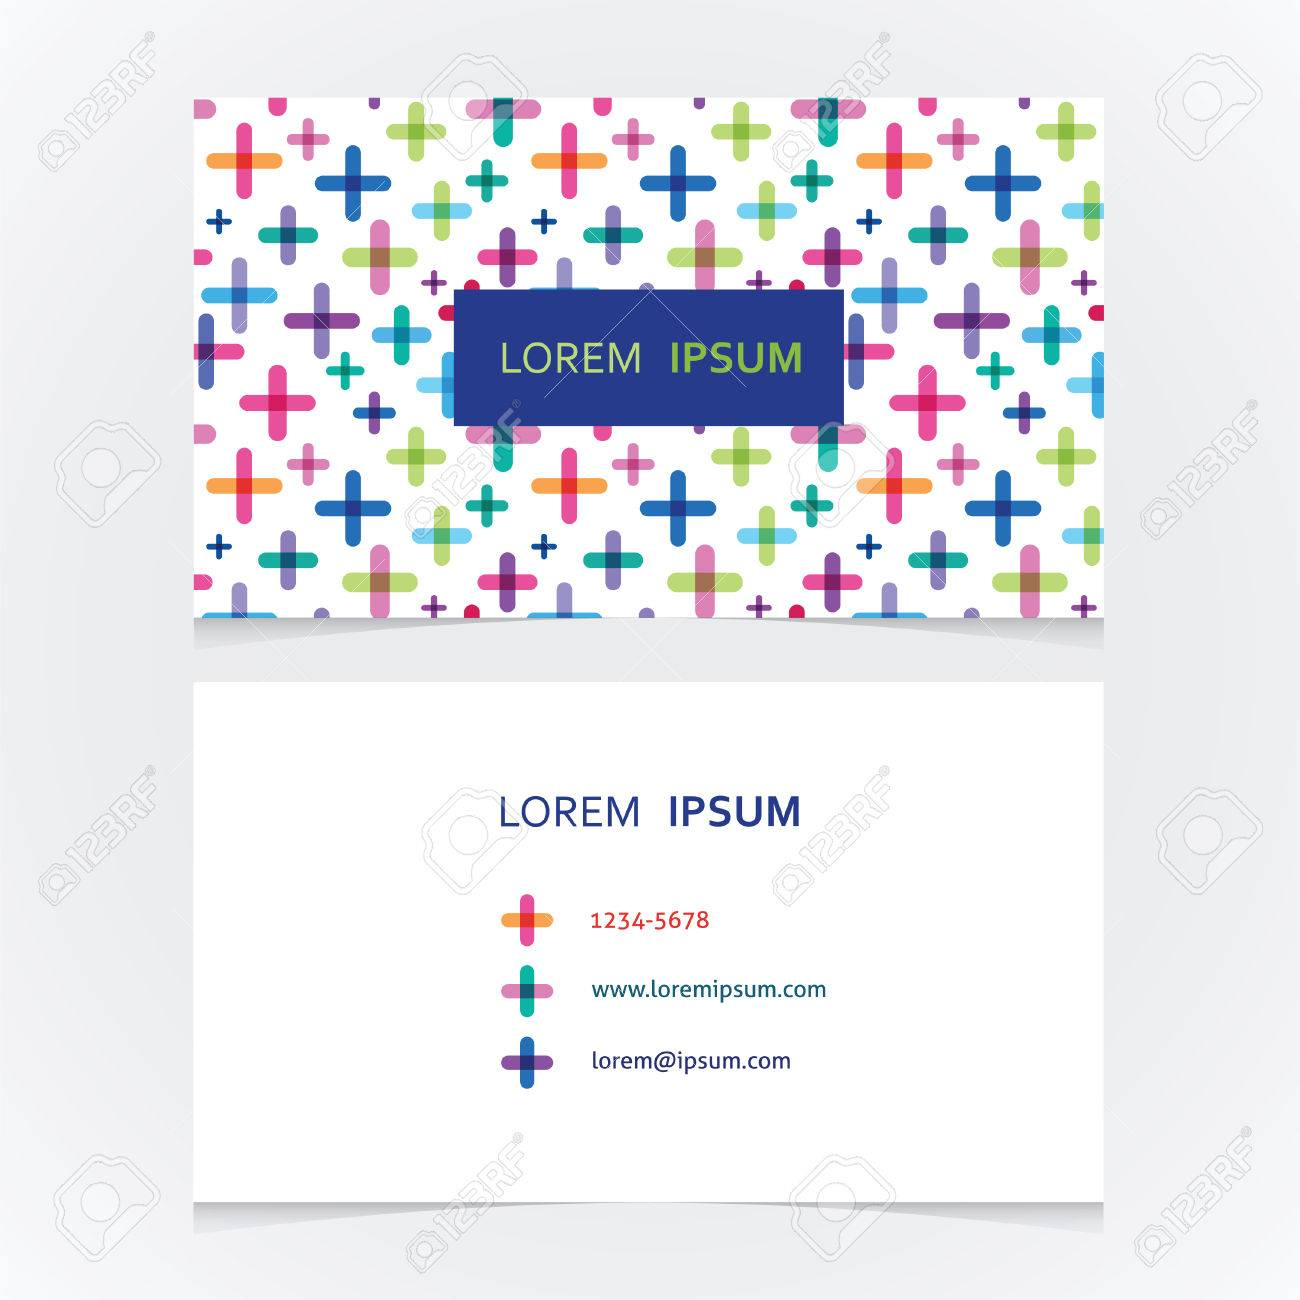 Cute business card with a bright pattern royalty free cliparts cute business card with a bright pattern stock vector 29298902 colourmoves